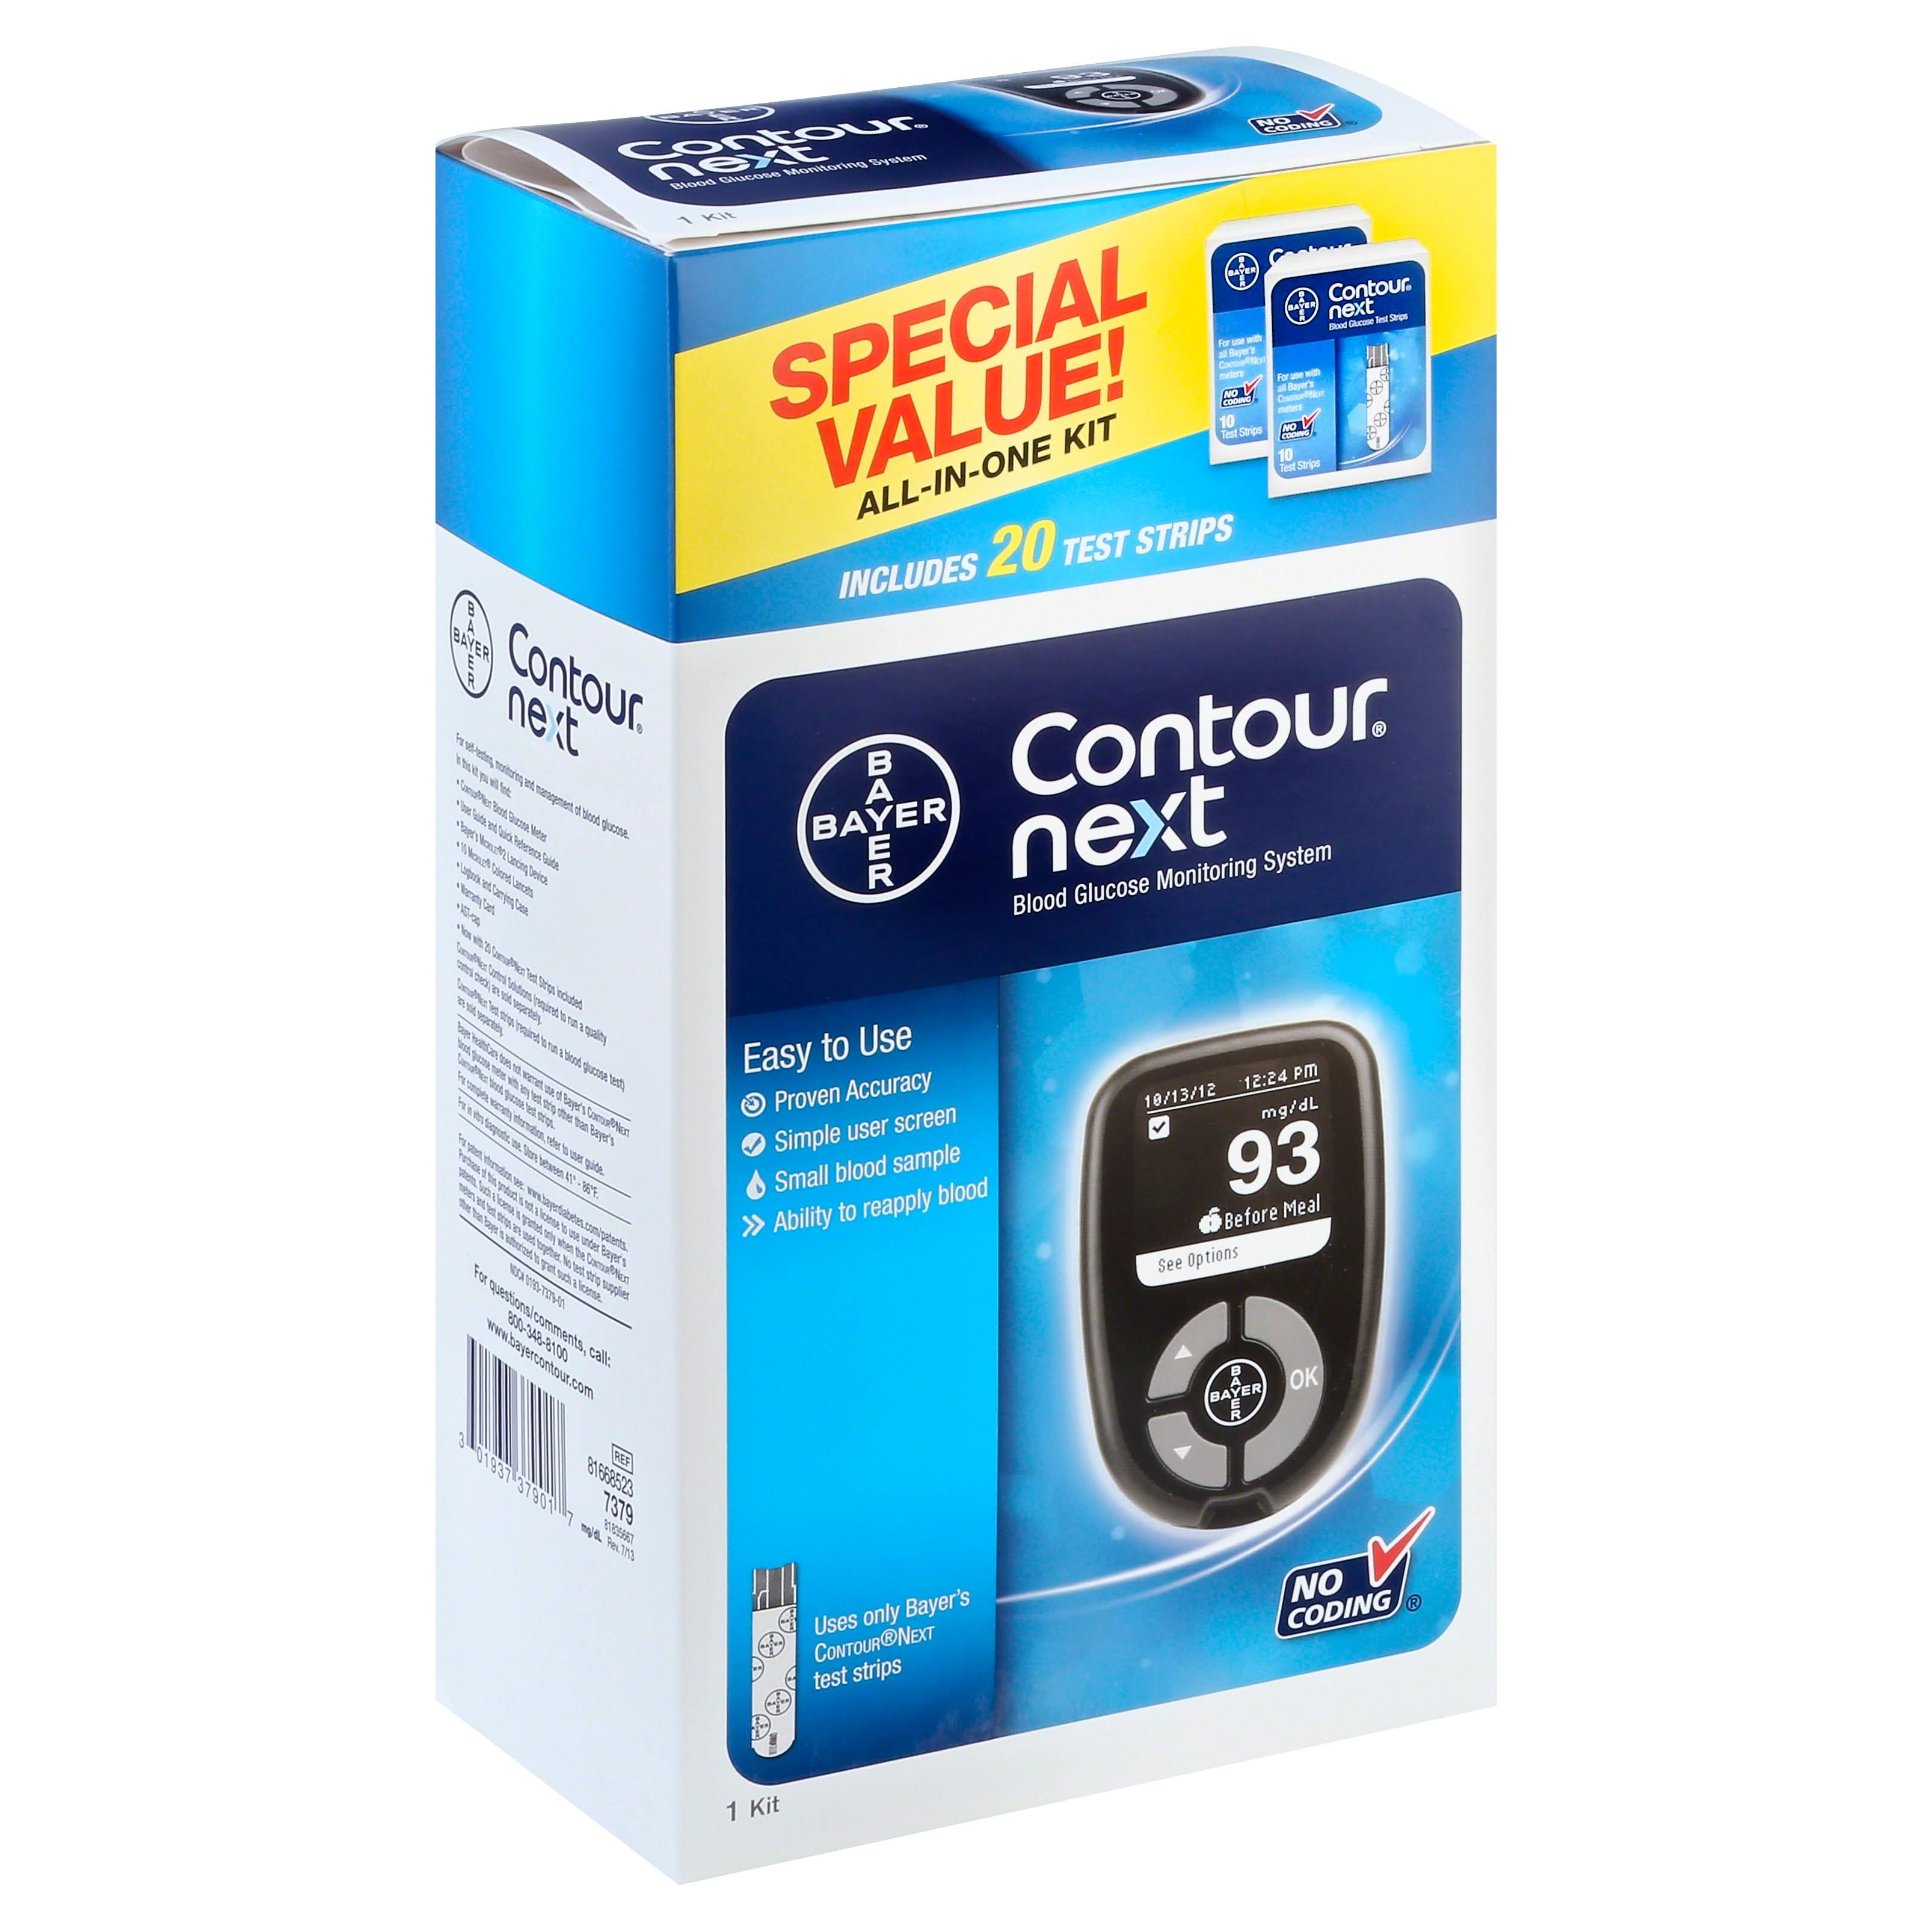 Contour Next Blood Glucose Monitoring System Kit - 20 Test Strips